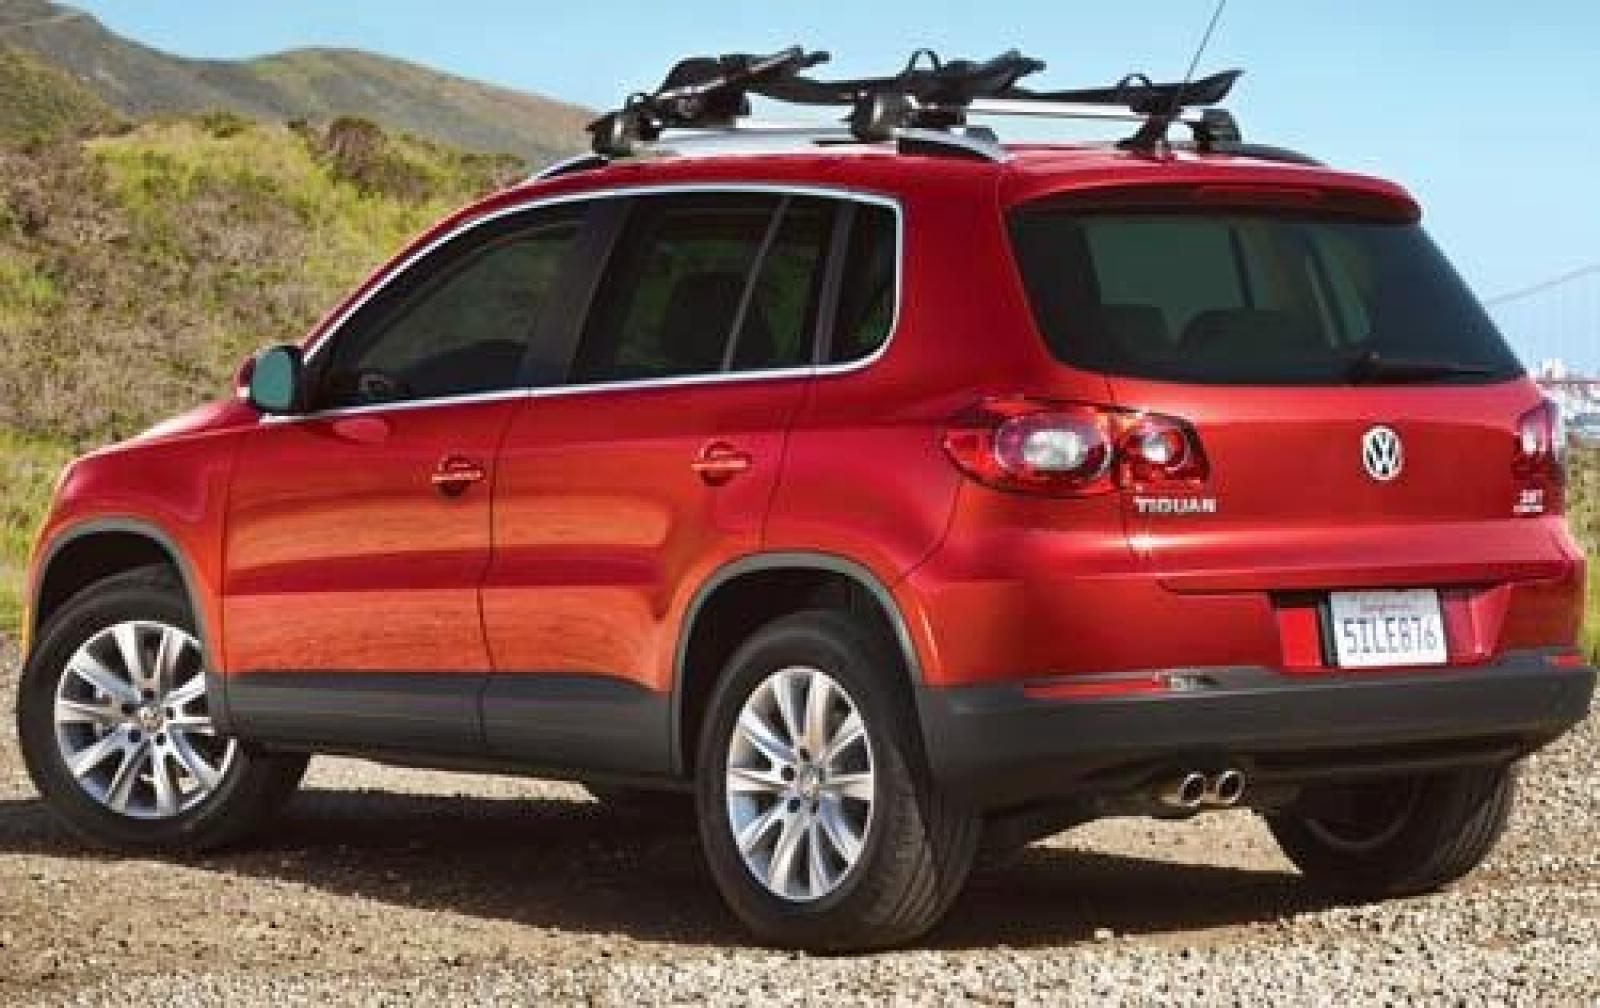 2011 volkswagen tiguan information and photos zombiedrive. Black Bedroom Furniture Sets. Home Design Ideas